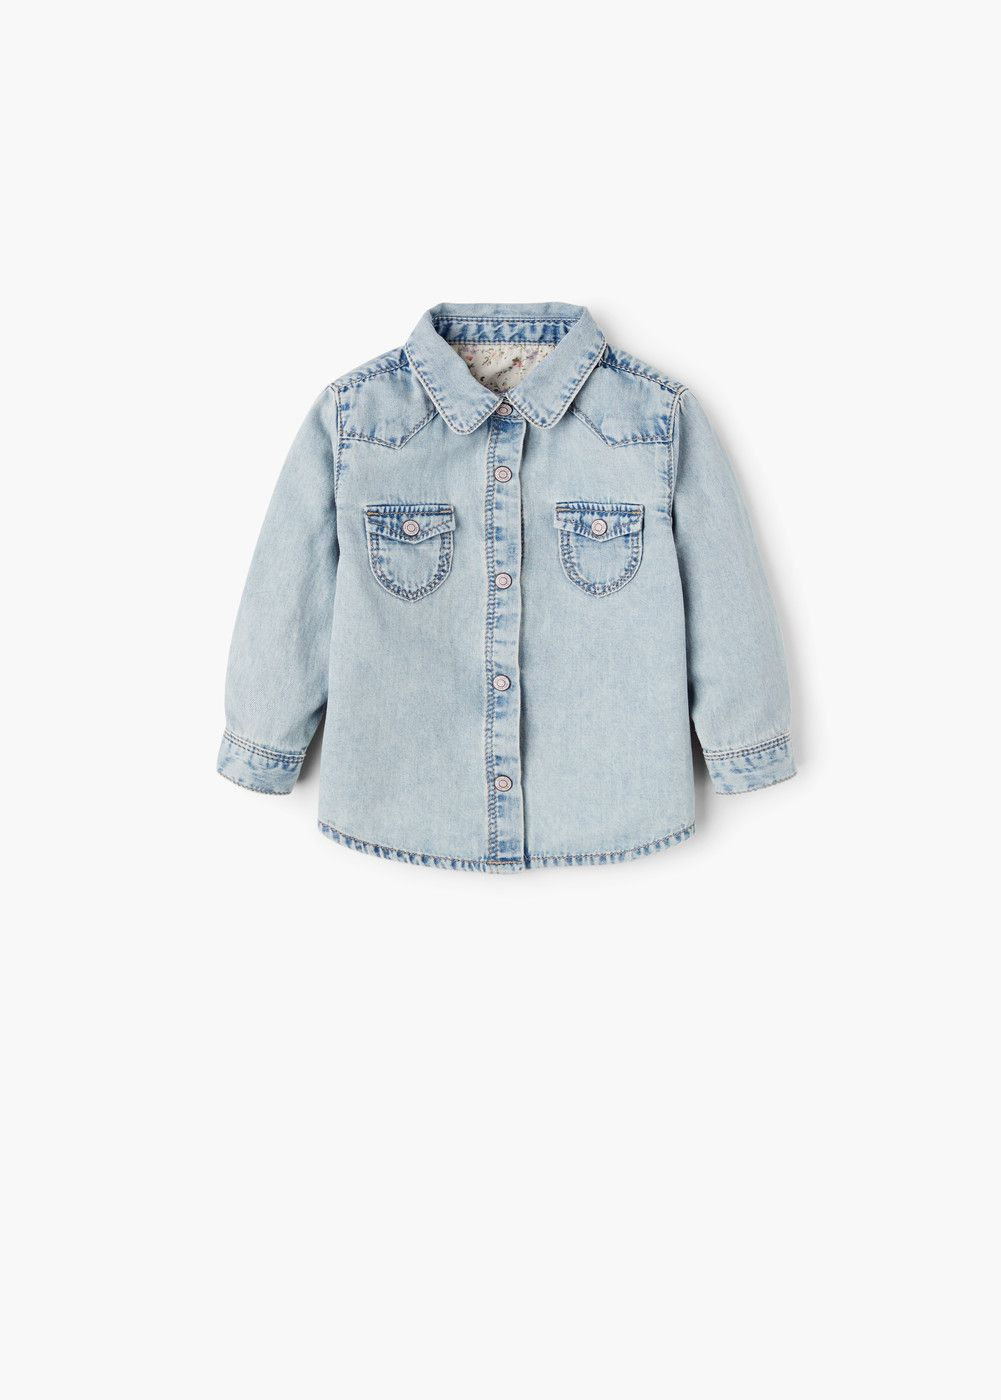 Denim shirt - Girls | Mango, Camisas y Ropa de bebés